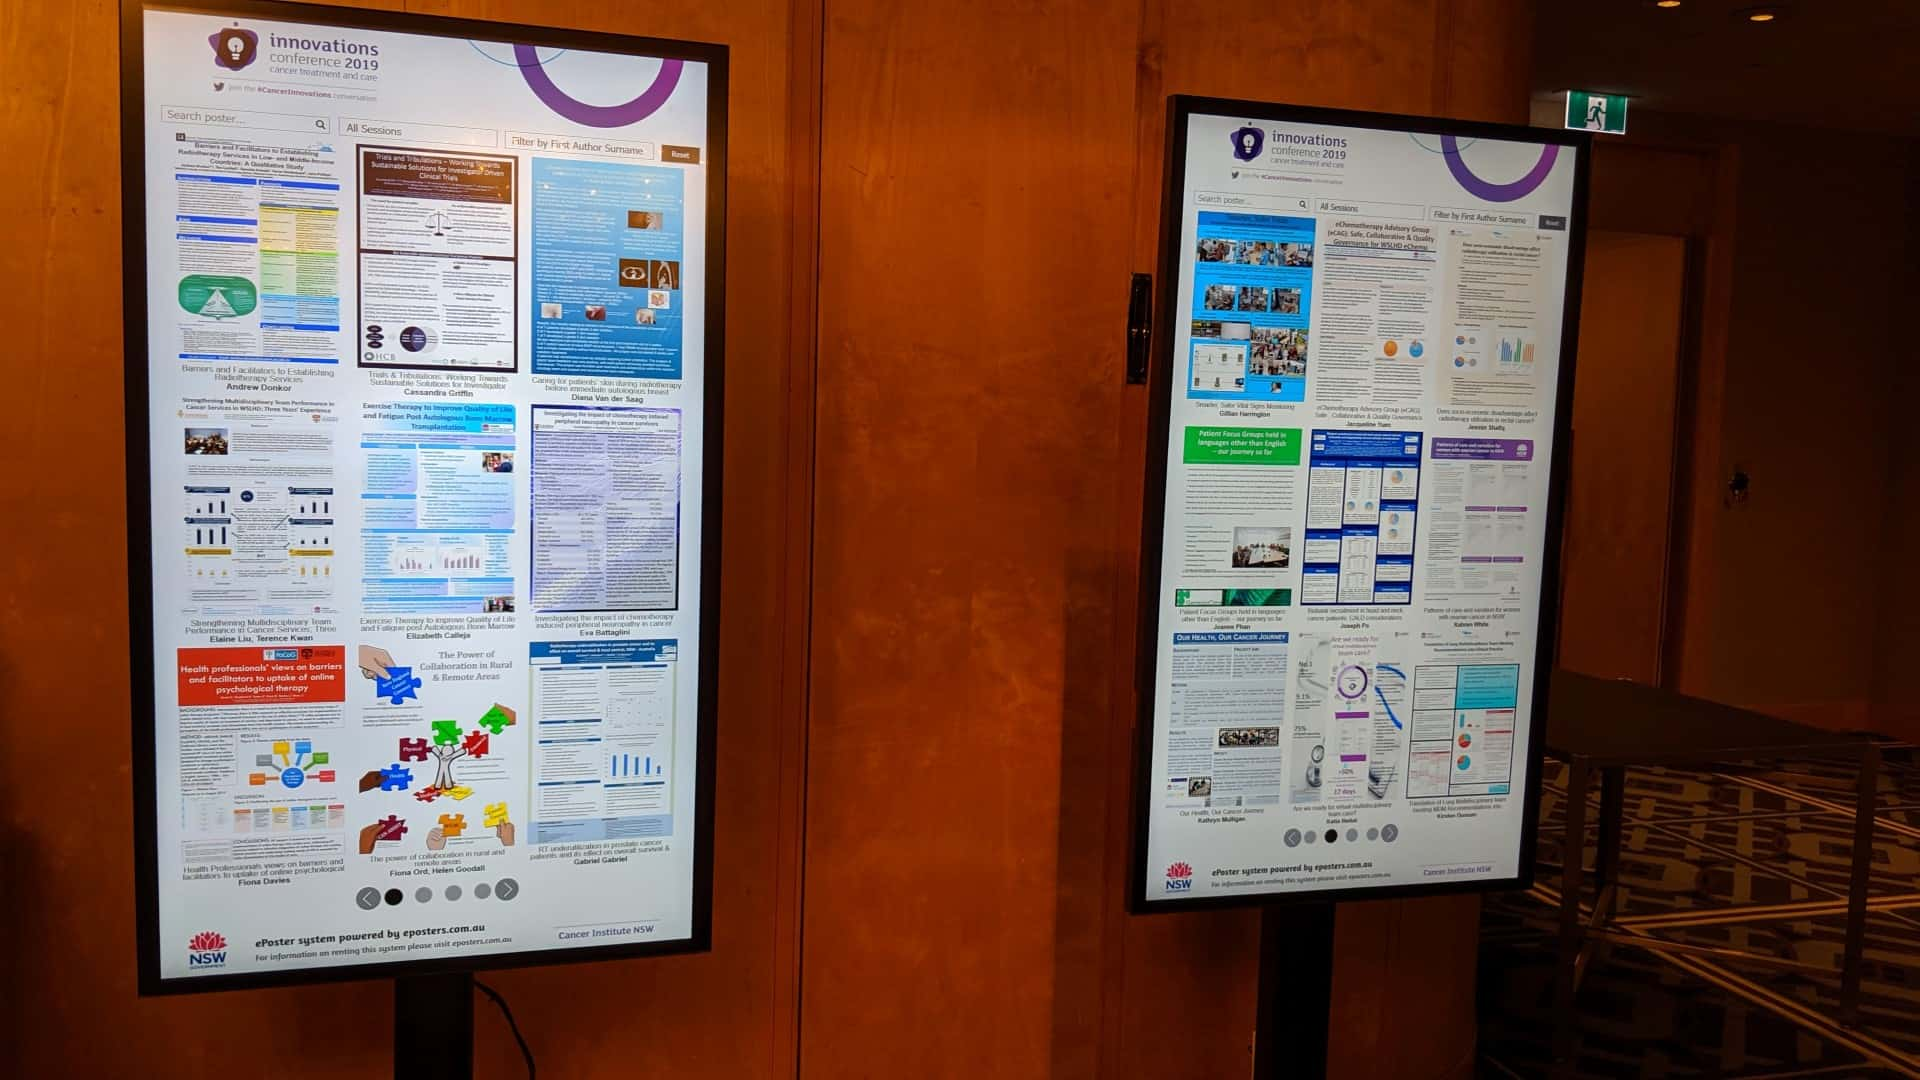 Advertise Me Interactive Digital Signage ePosters Cancer Institute NSW Conference 6